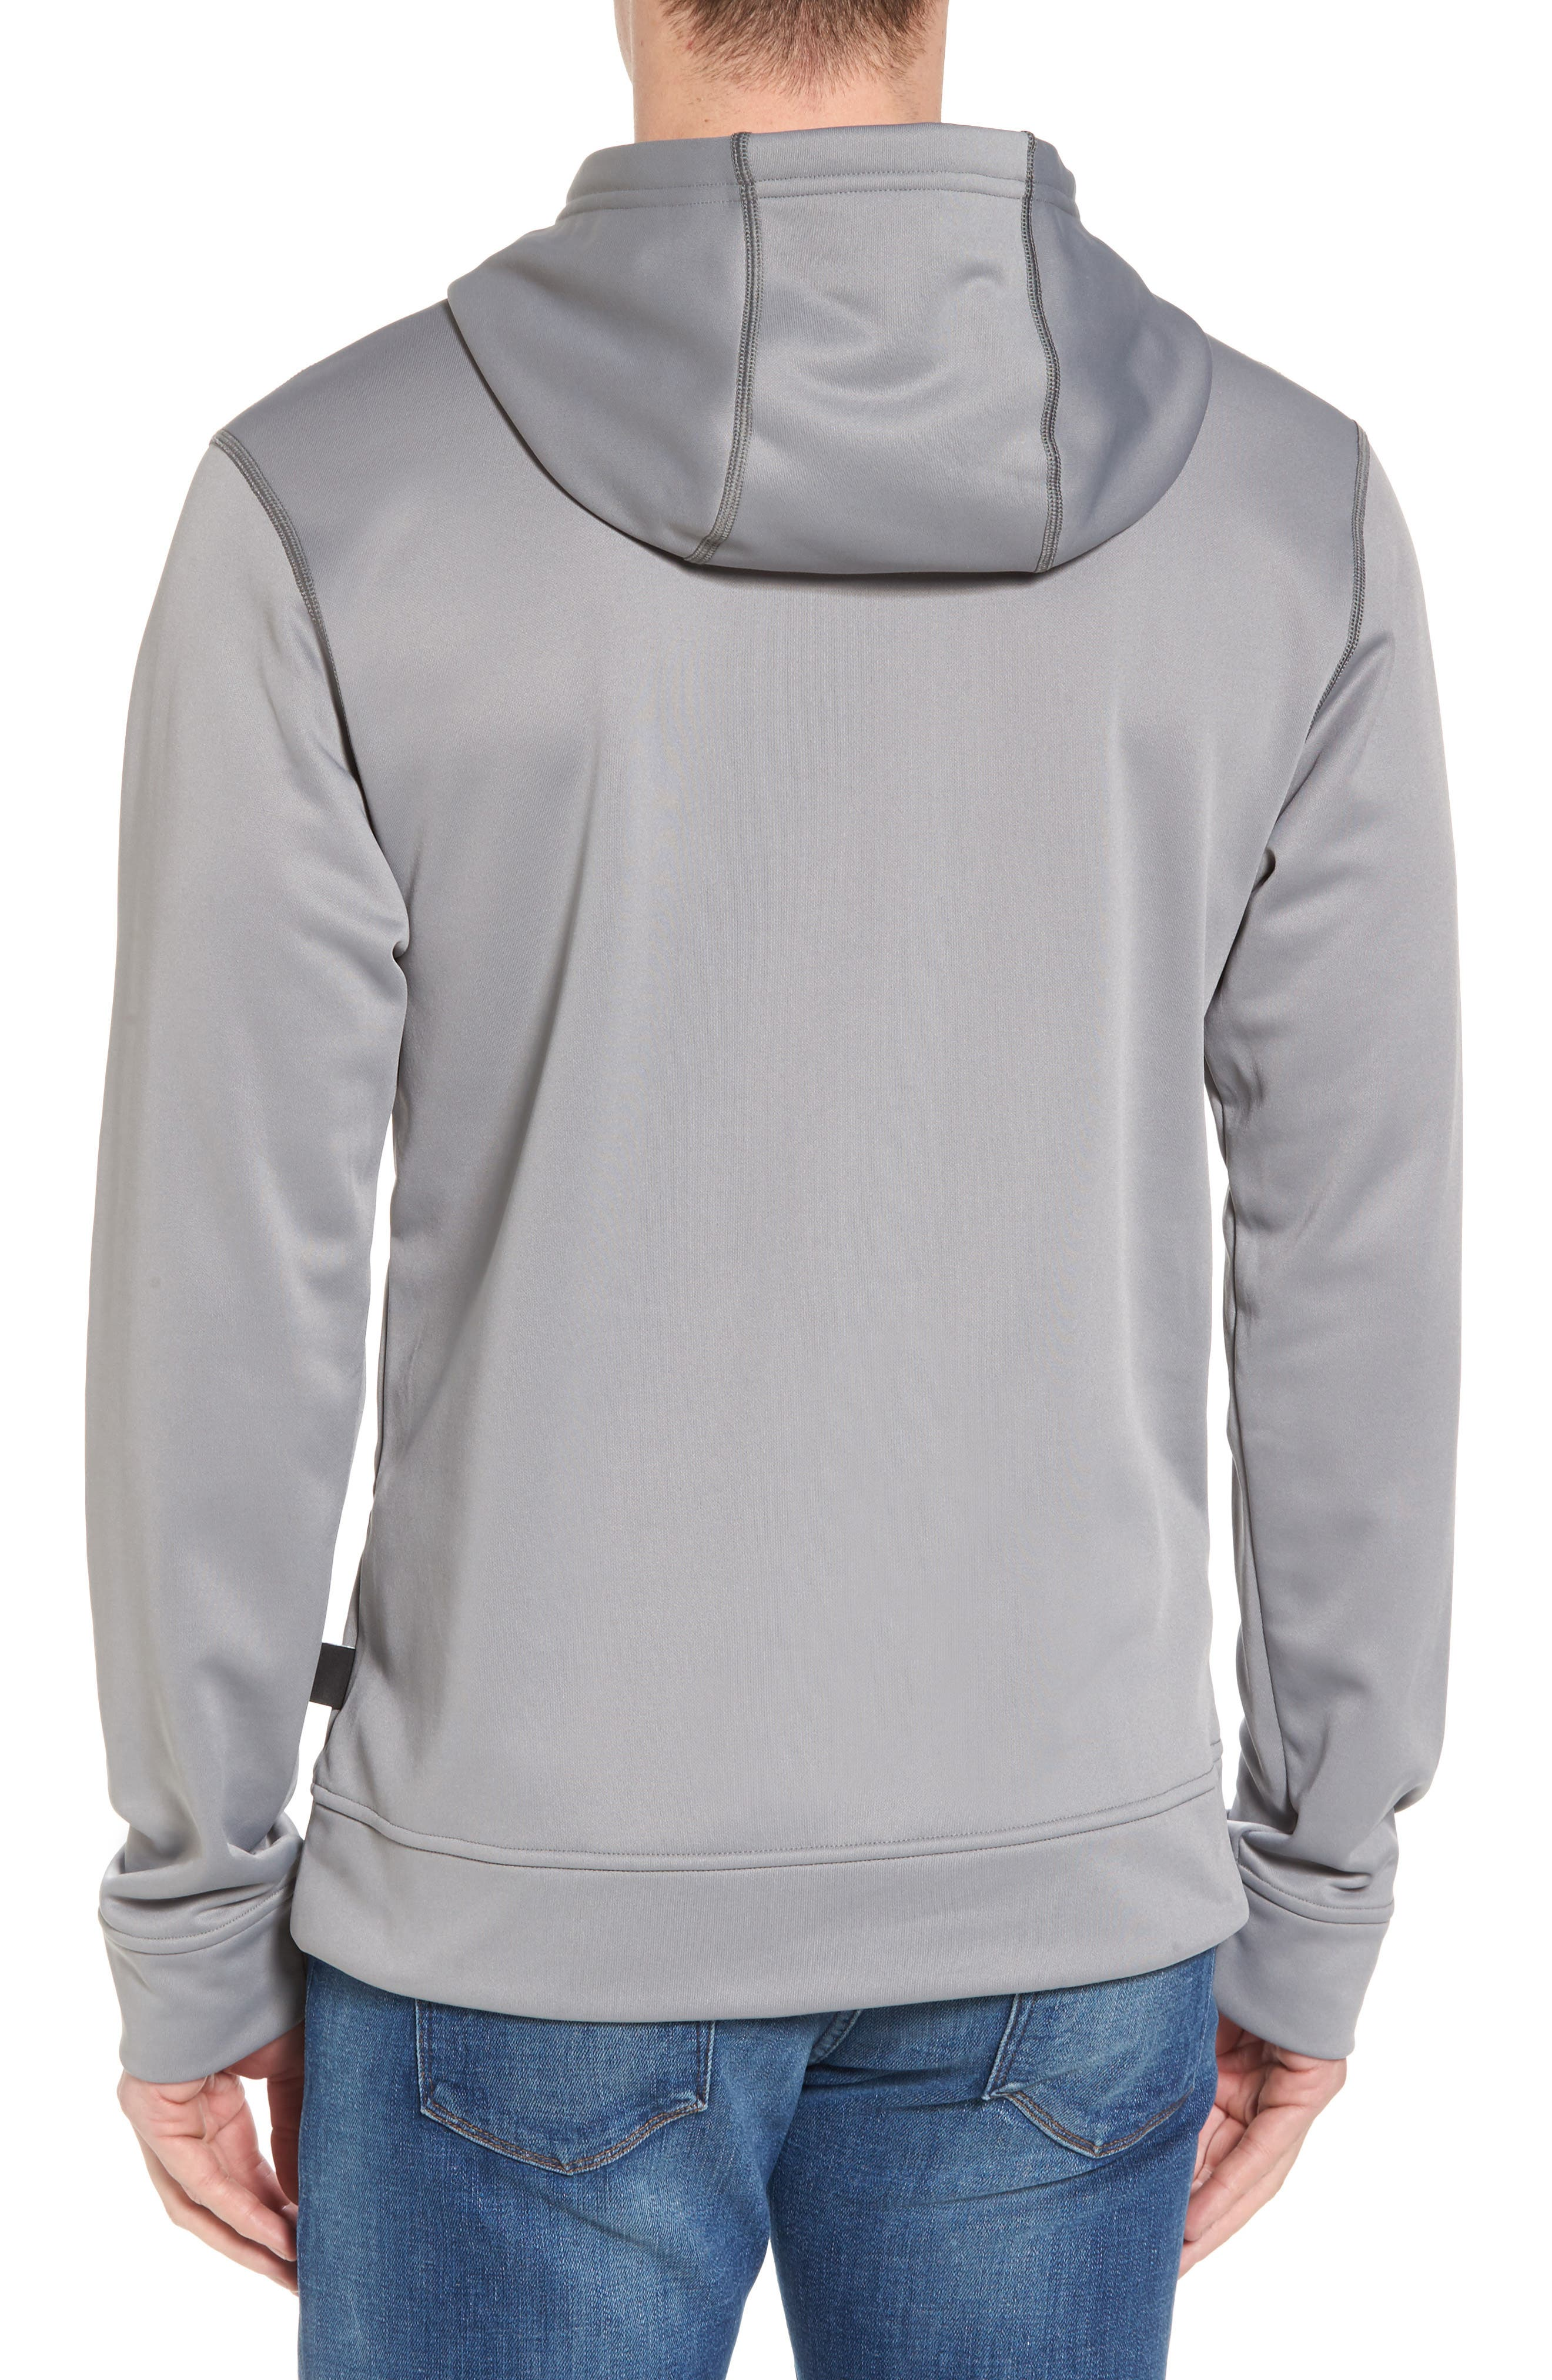 Polycycle Hoodie,                             Alternate thumbnail 2, color,                             Feather Grey/ White